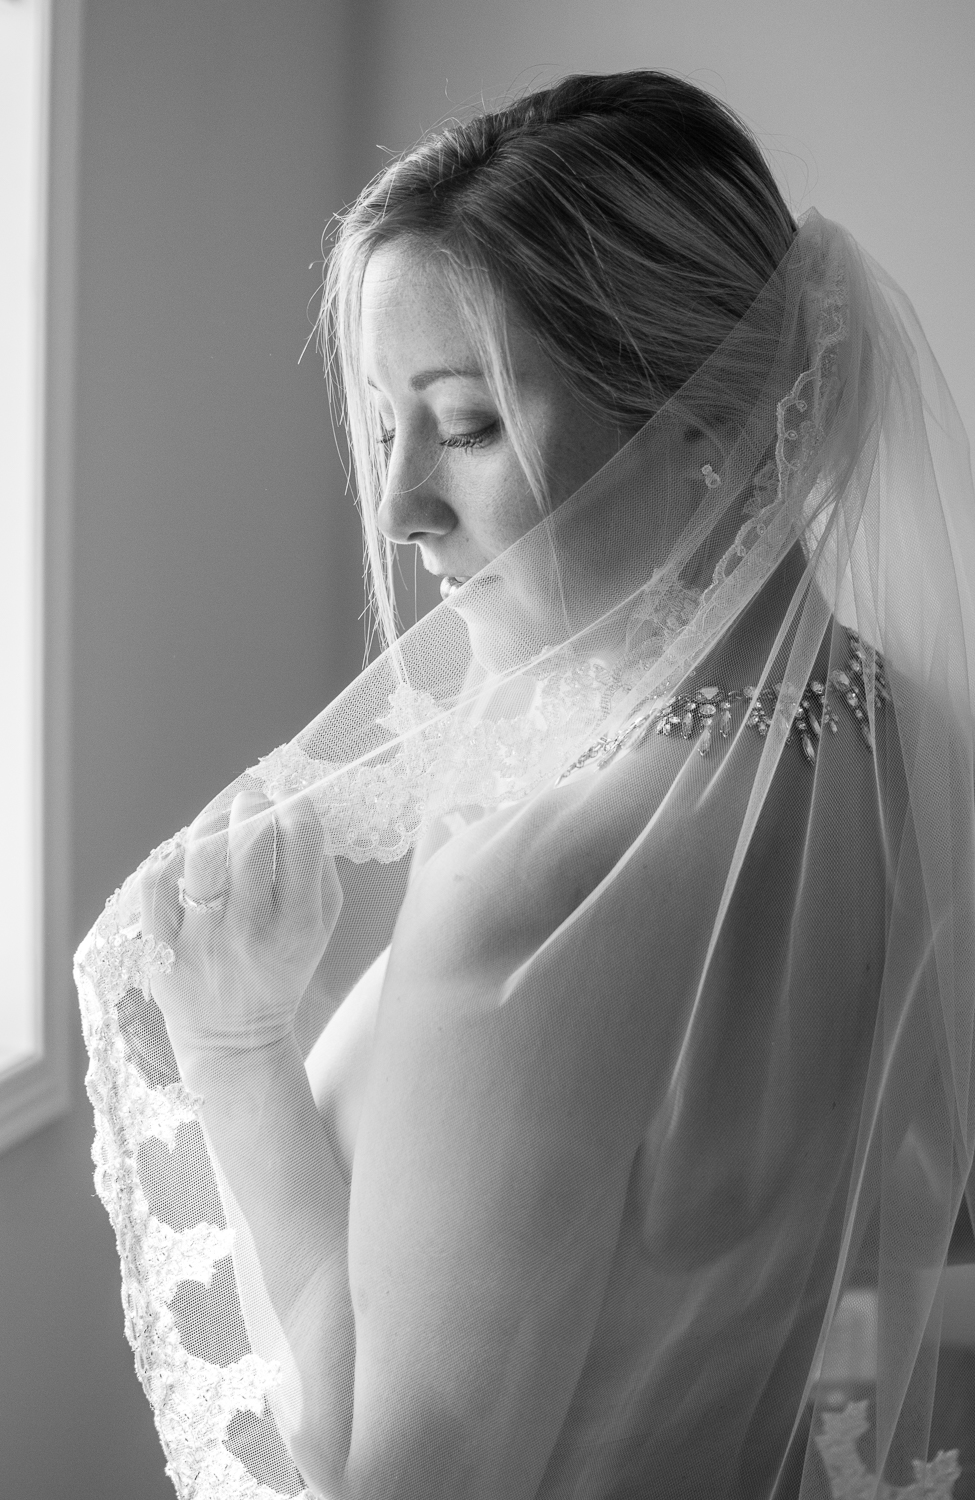 Bridal boudoir photography clarksville, TN Fort Campbell, KY